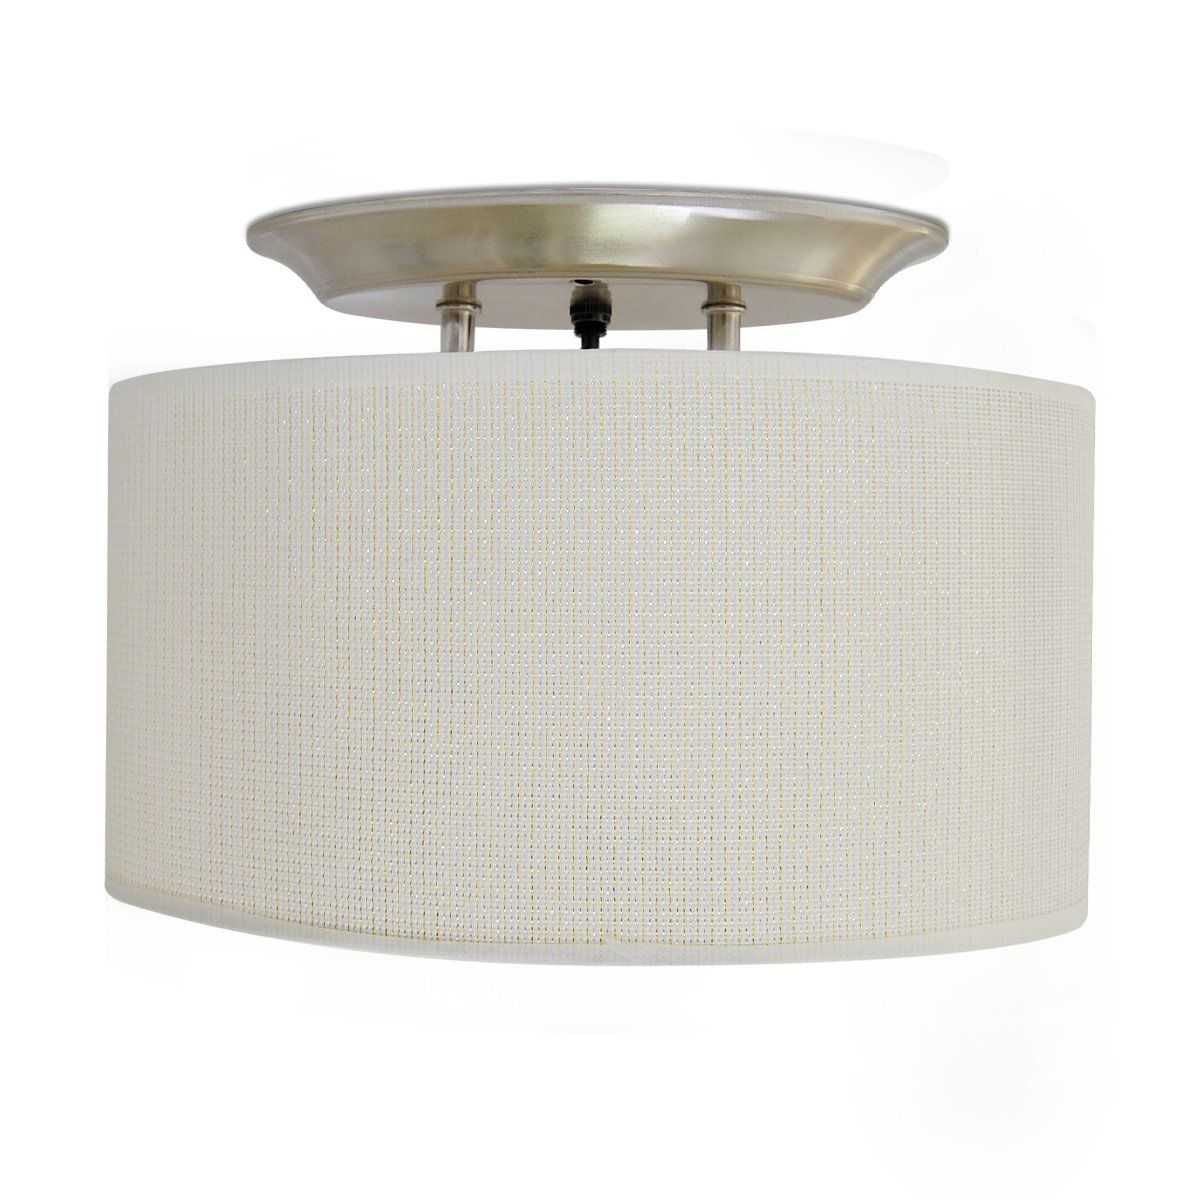 Amazon Com Dream Lighting 12v Fabric Light Fixture With White Elliptical Ceiling Light Shade With On Off Switch Led Decor Lamp Led Decor Light Fixtures Lamp